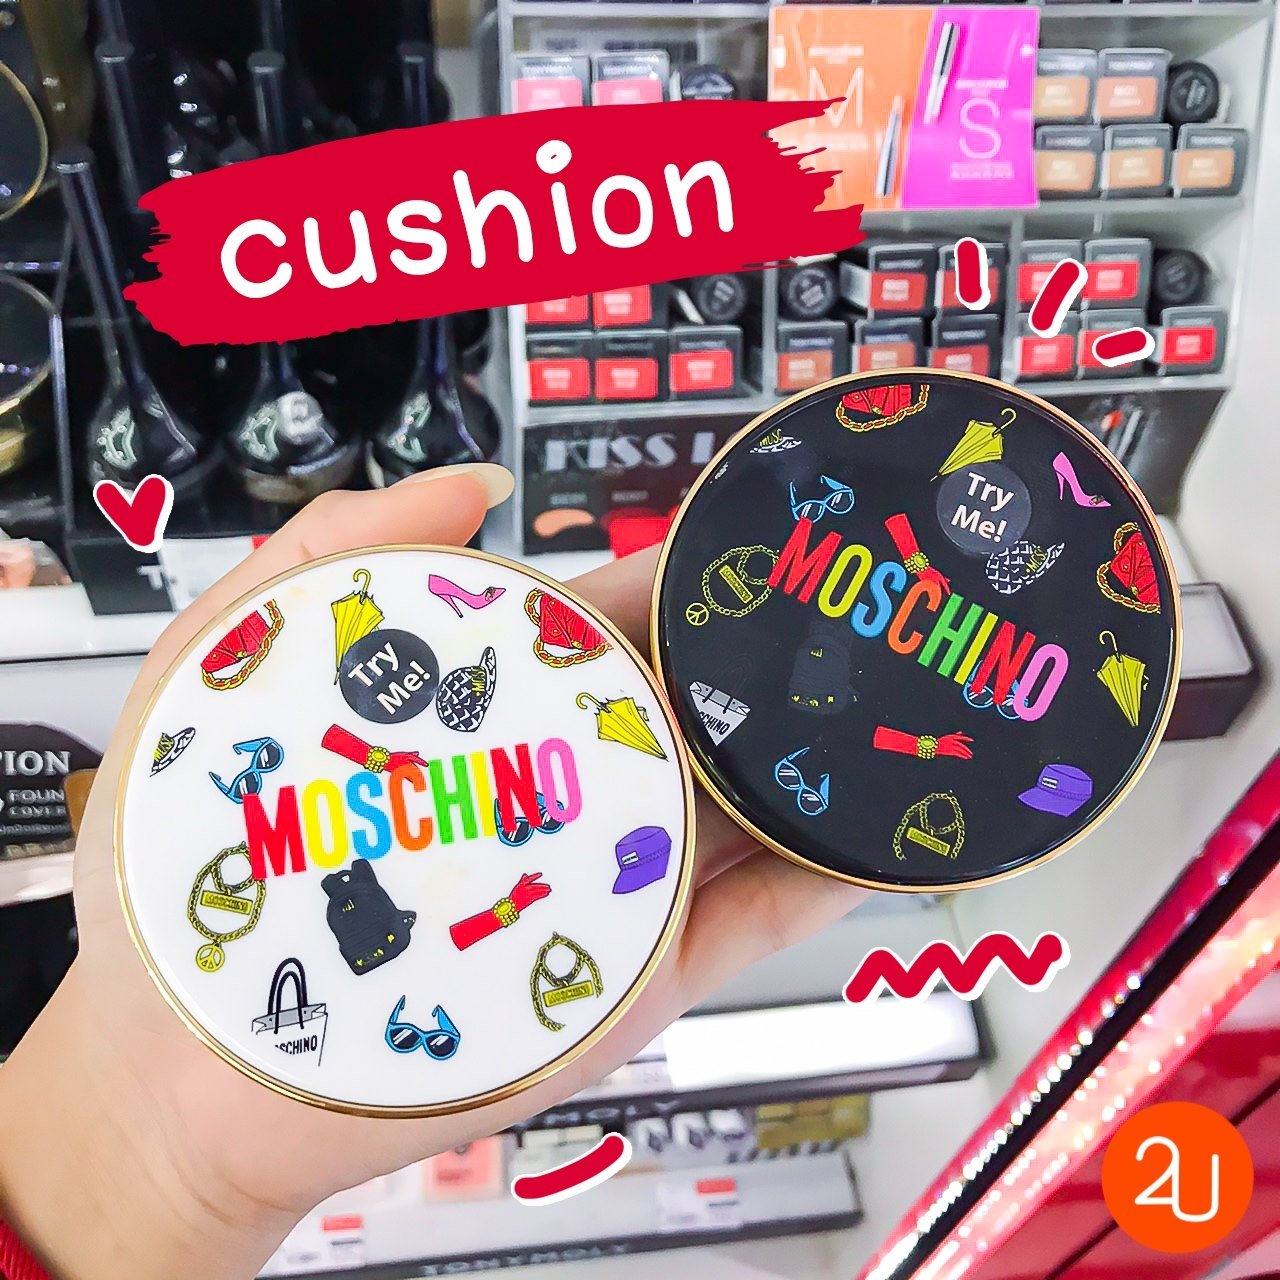 Moschino Cushion